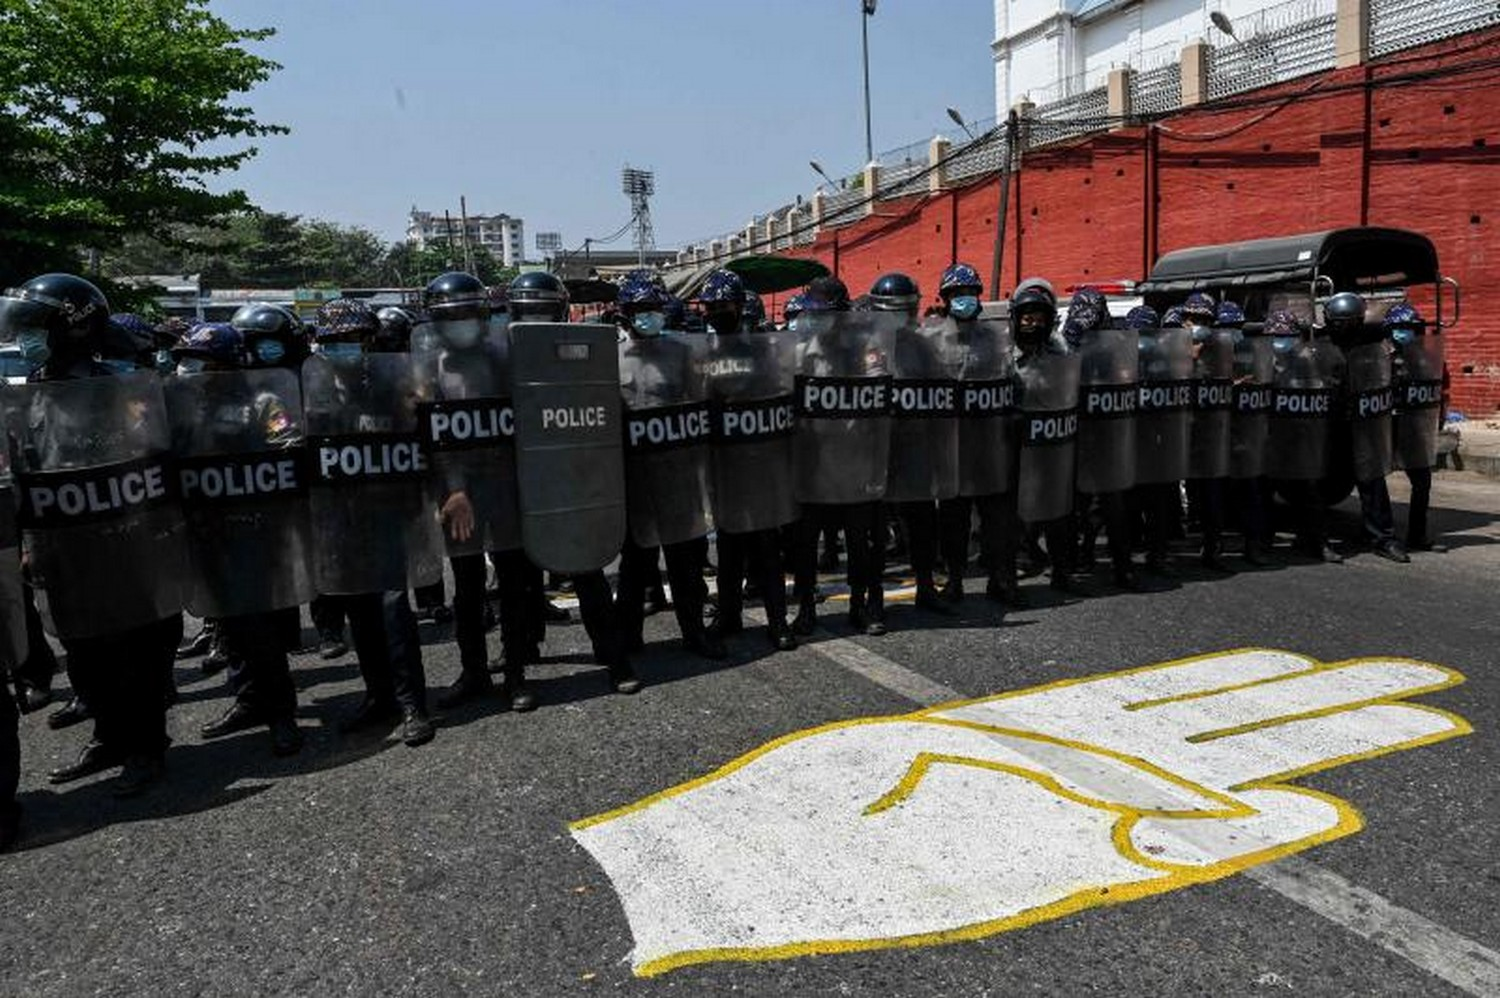 Riot police stand guard on a road, behind a street mural of the protesters' three finger salute, after a clash between pro-junta supporters and anti-military coup protesters in Yangon on Thursday. (Photo: Ye Aung Thu / AFP)